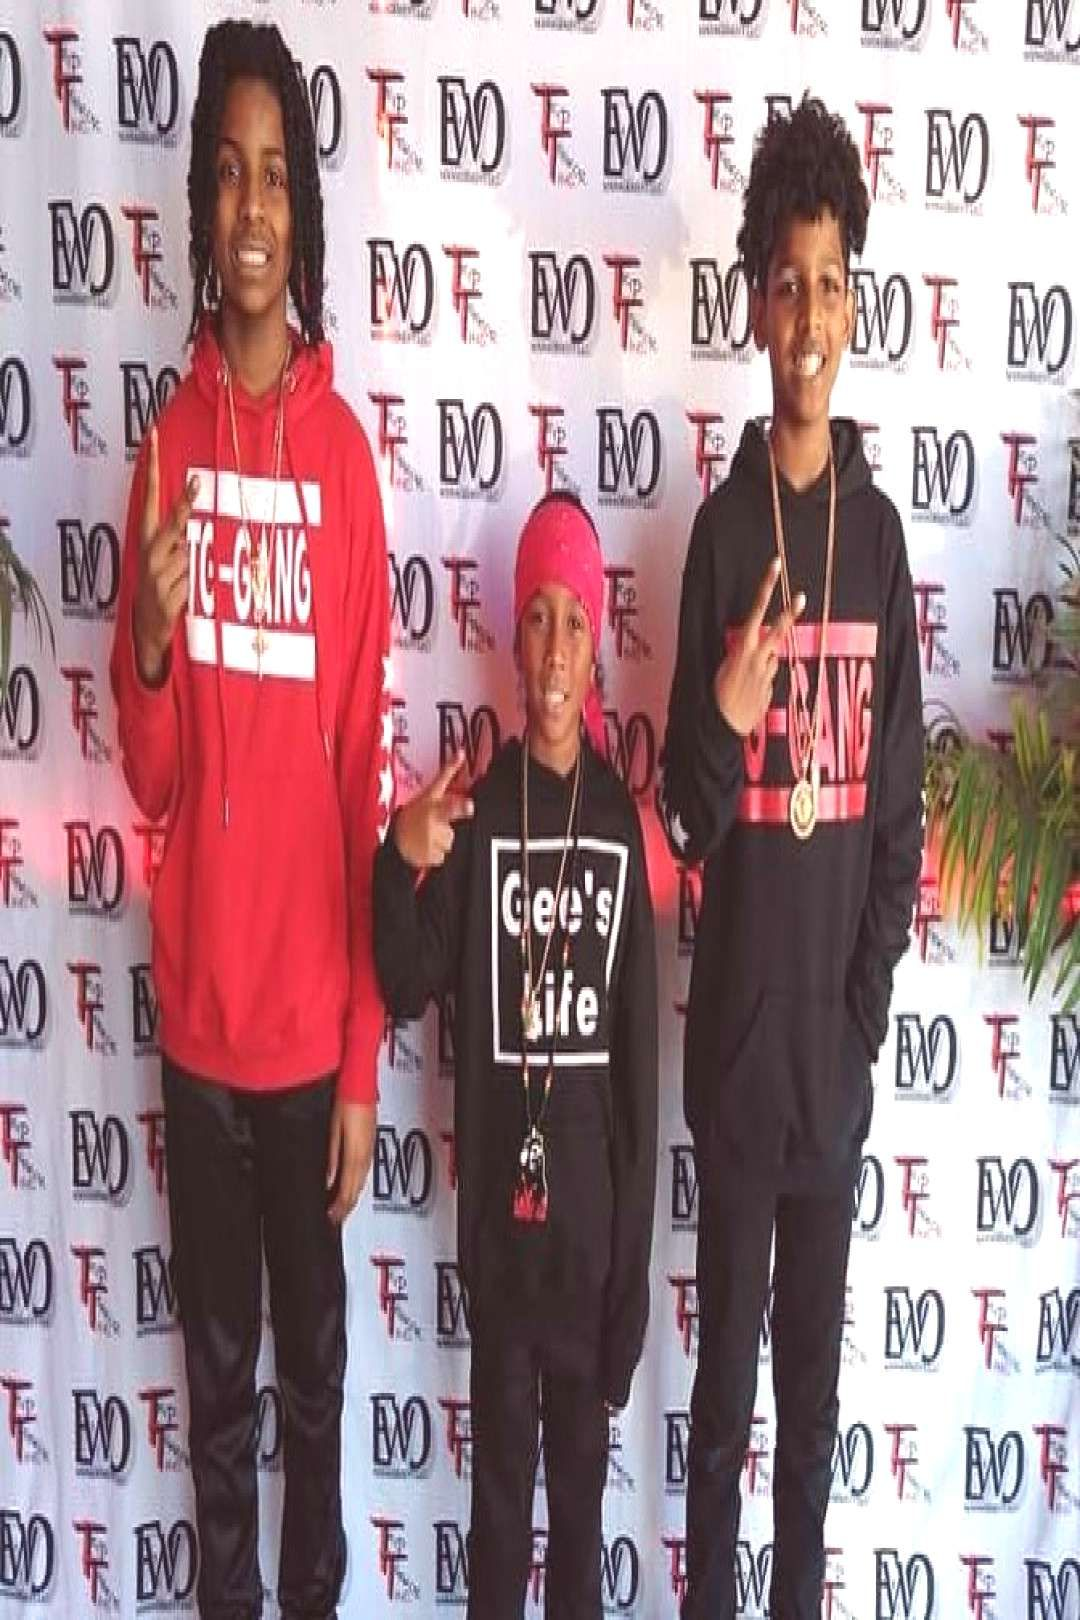 #wordofmouthwednesdays #peoplepeople #standing #feature #this #week #boys #text #the #gee #and #on #we #a #3 This Week on #WordOfMouthWednesdays we feature ️The Gee Boy's aYou can find Savings tips and mo...